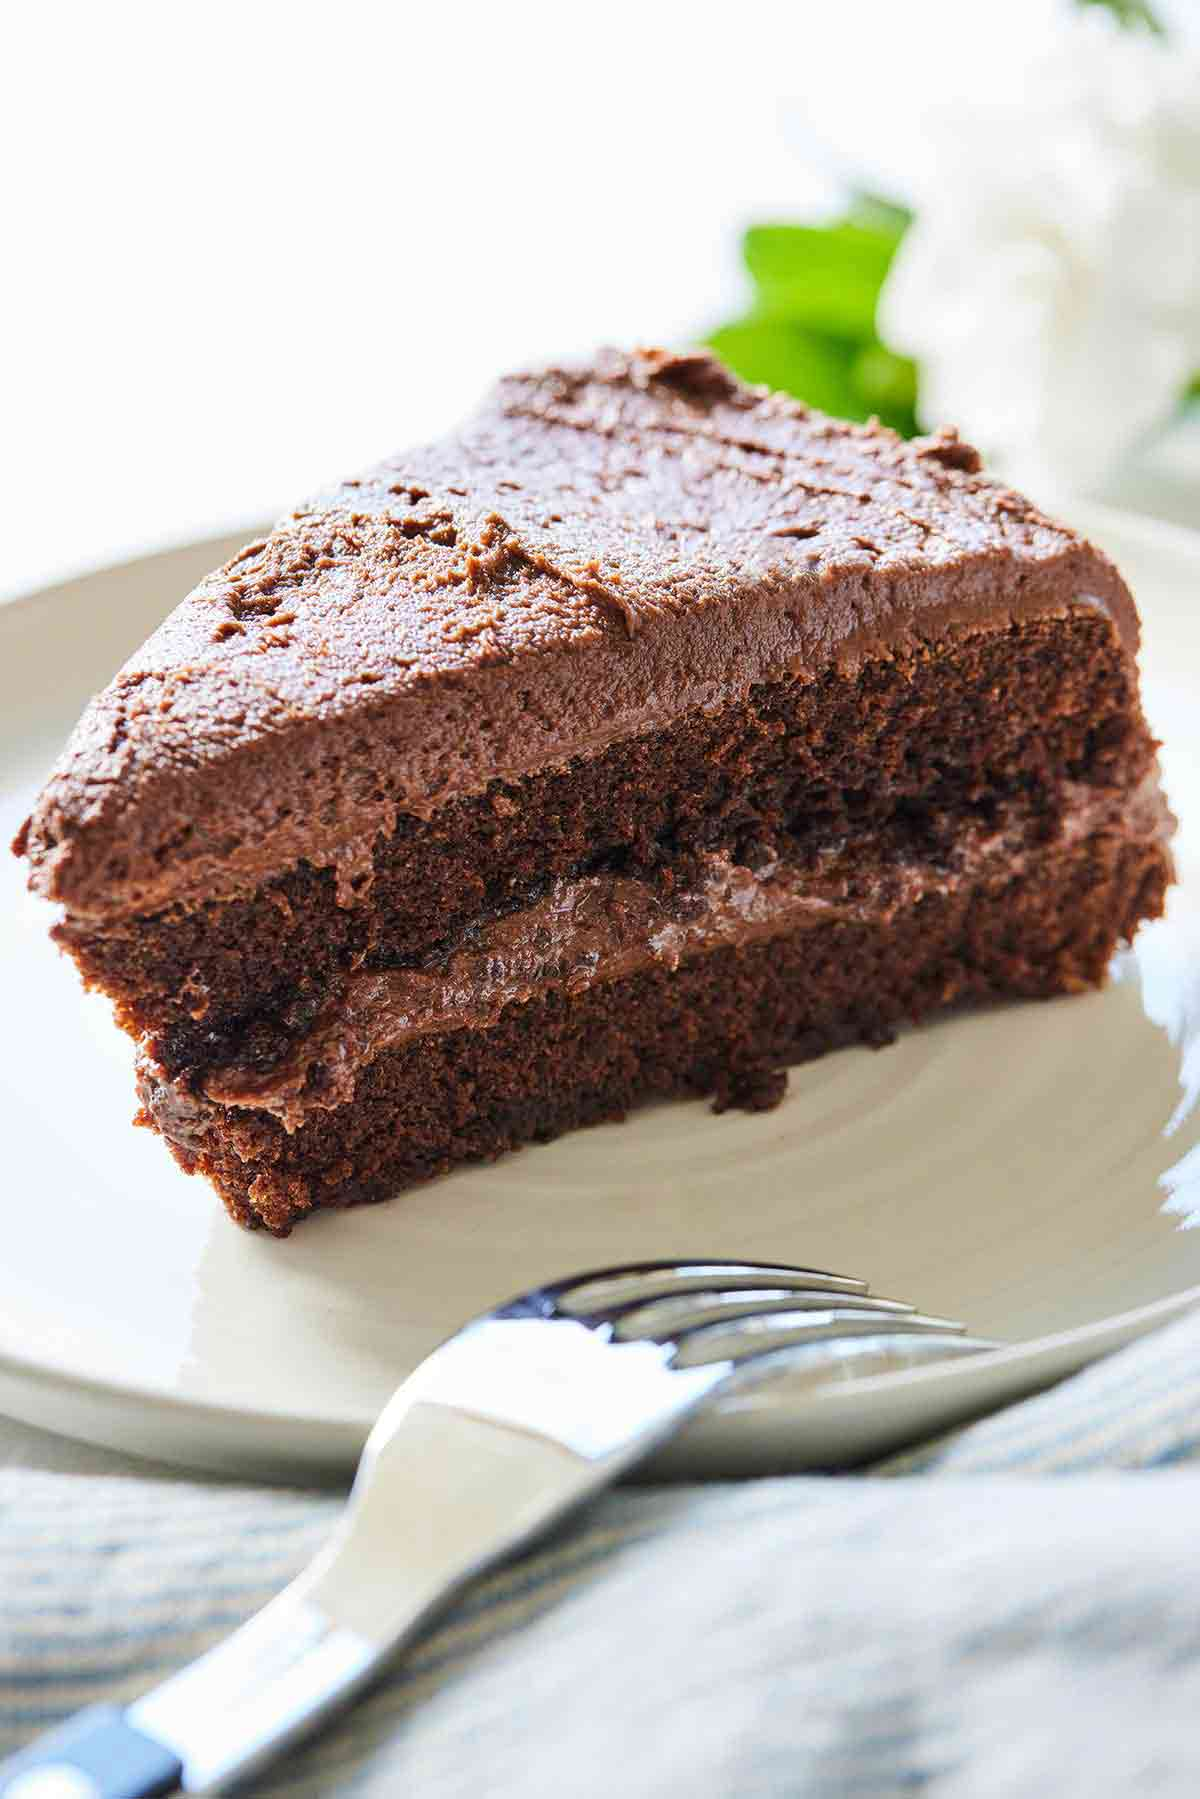 A plate of a slice of vegan chocolate cake with chocolate frosting.